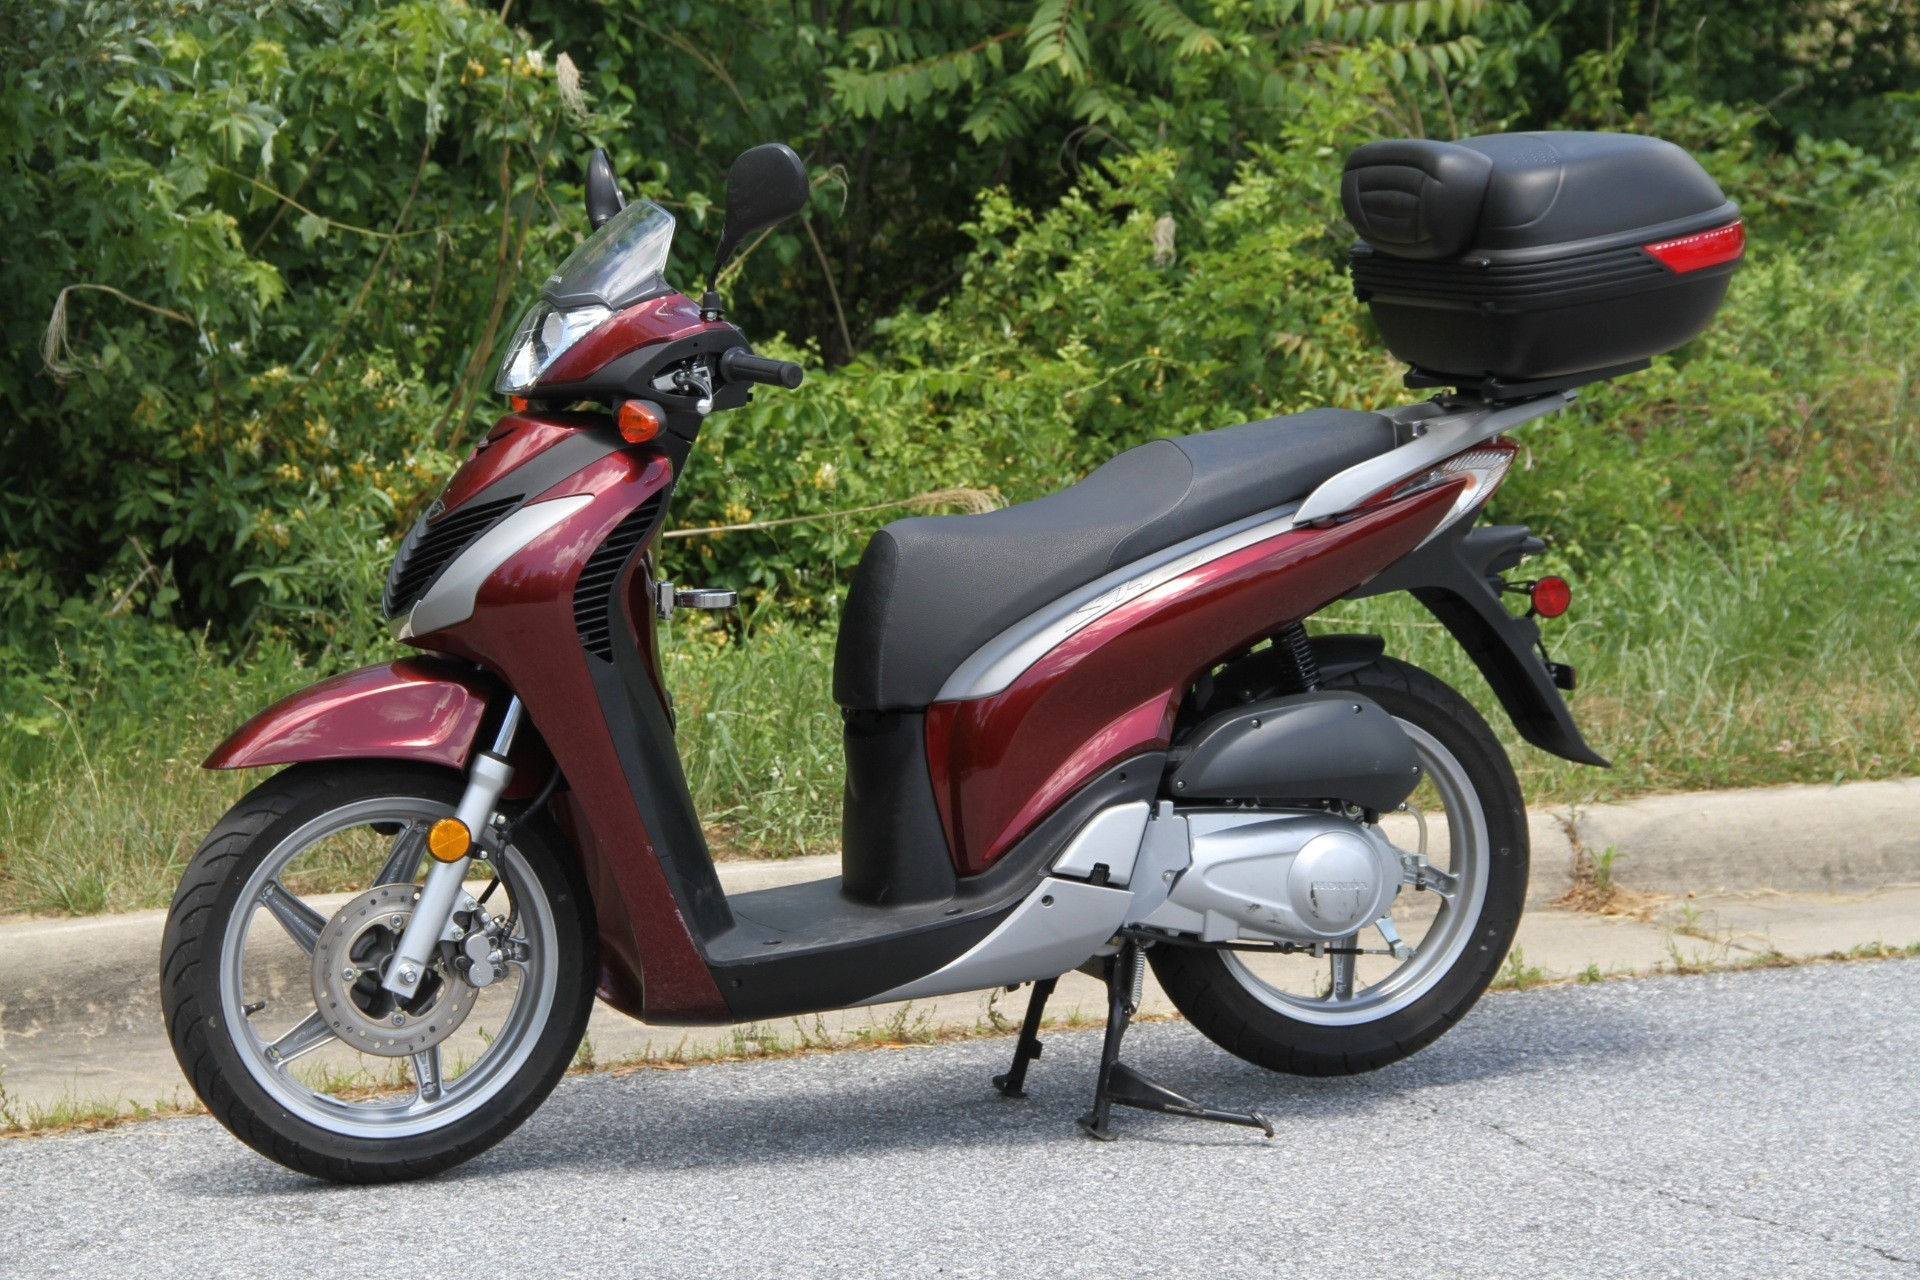 Used 2010 Honda SH150i Scooters in Hendersonville, NC | Stock Number ...